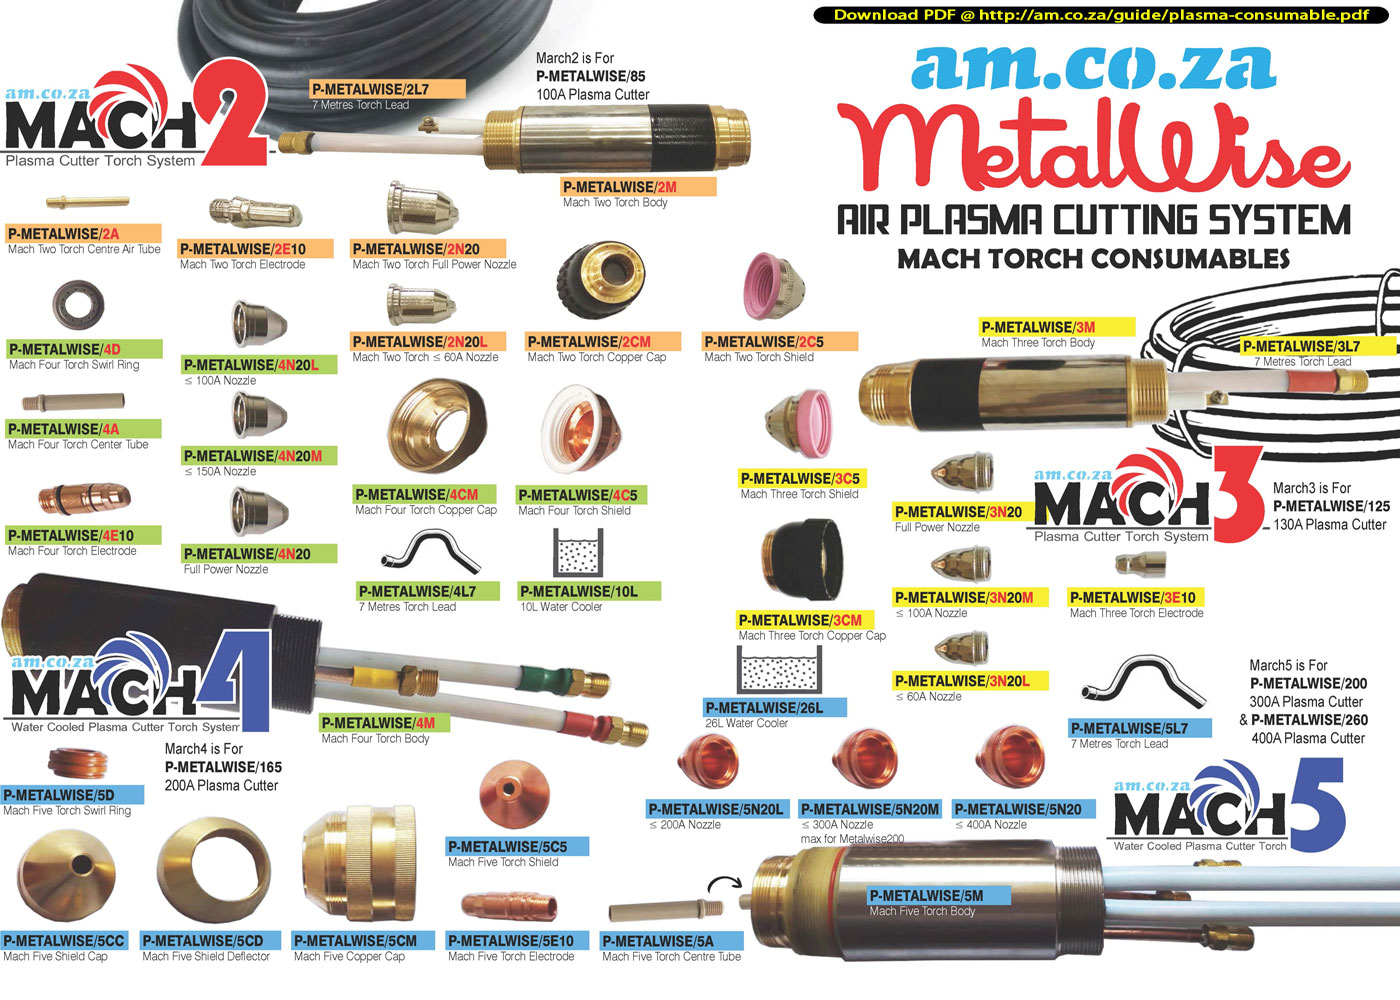 Plasma Cutter Consumables Chart